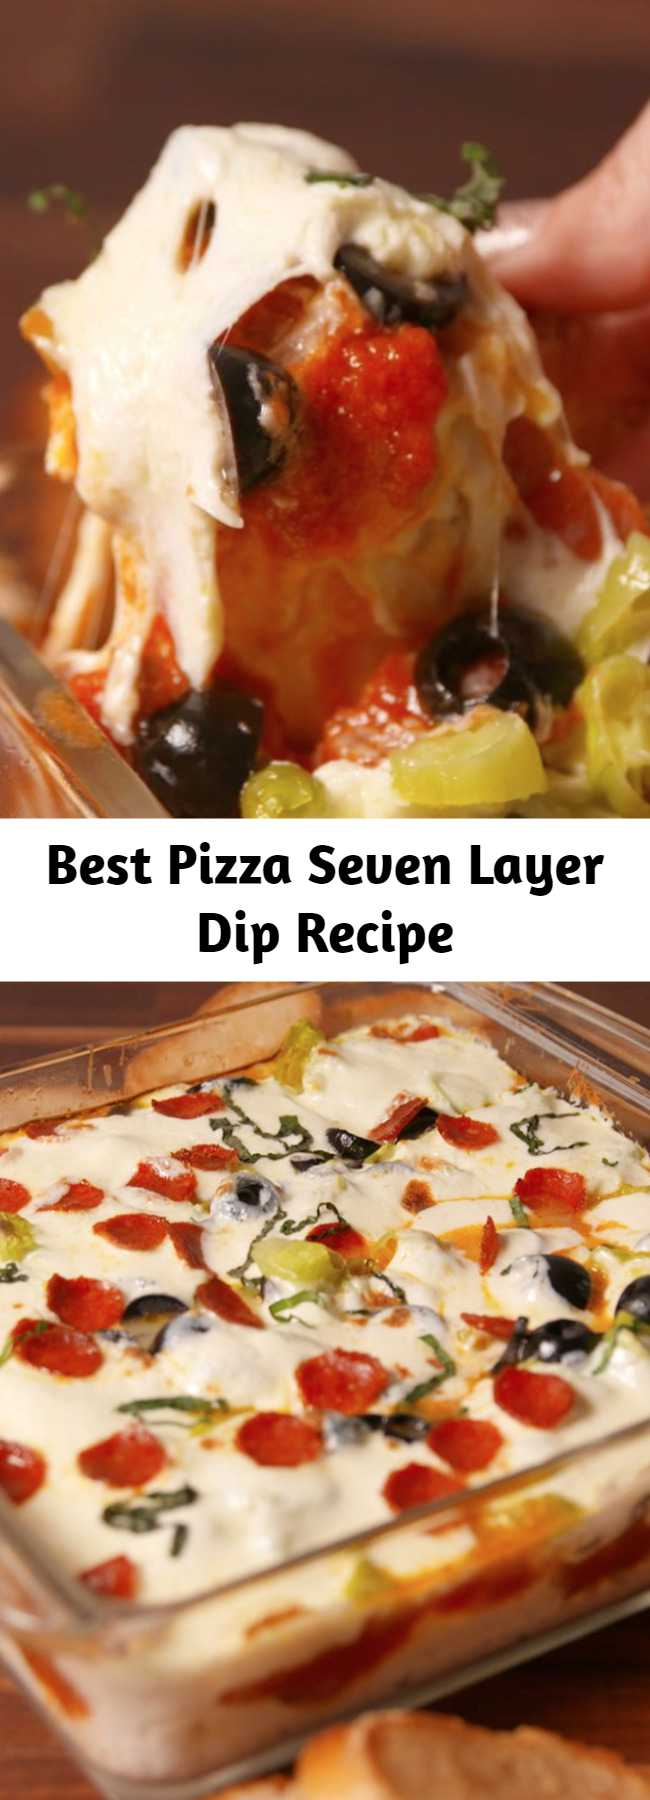 Best Pizza Seven Layer Dip Recipe - This pizza seven-layer dip is the cheesiest party appetizer you'll ever have. #easyrecipes #dips #fingerfoods #pizzadip #partyapps #partyappetizers #superbowlrecipes